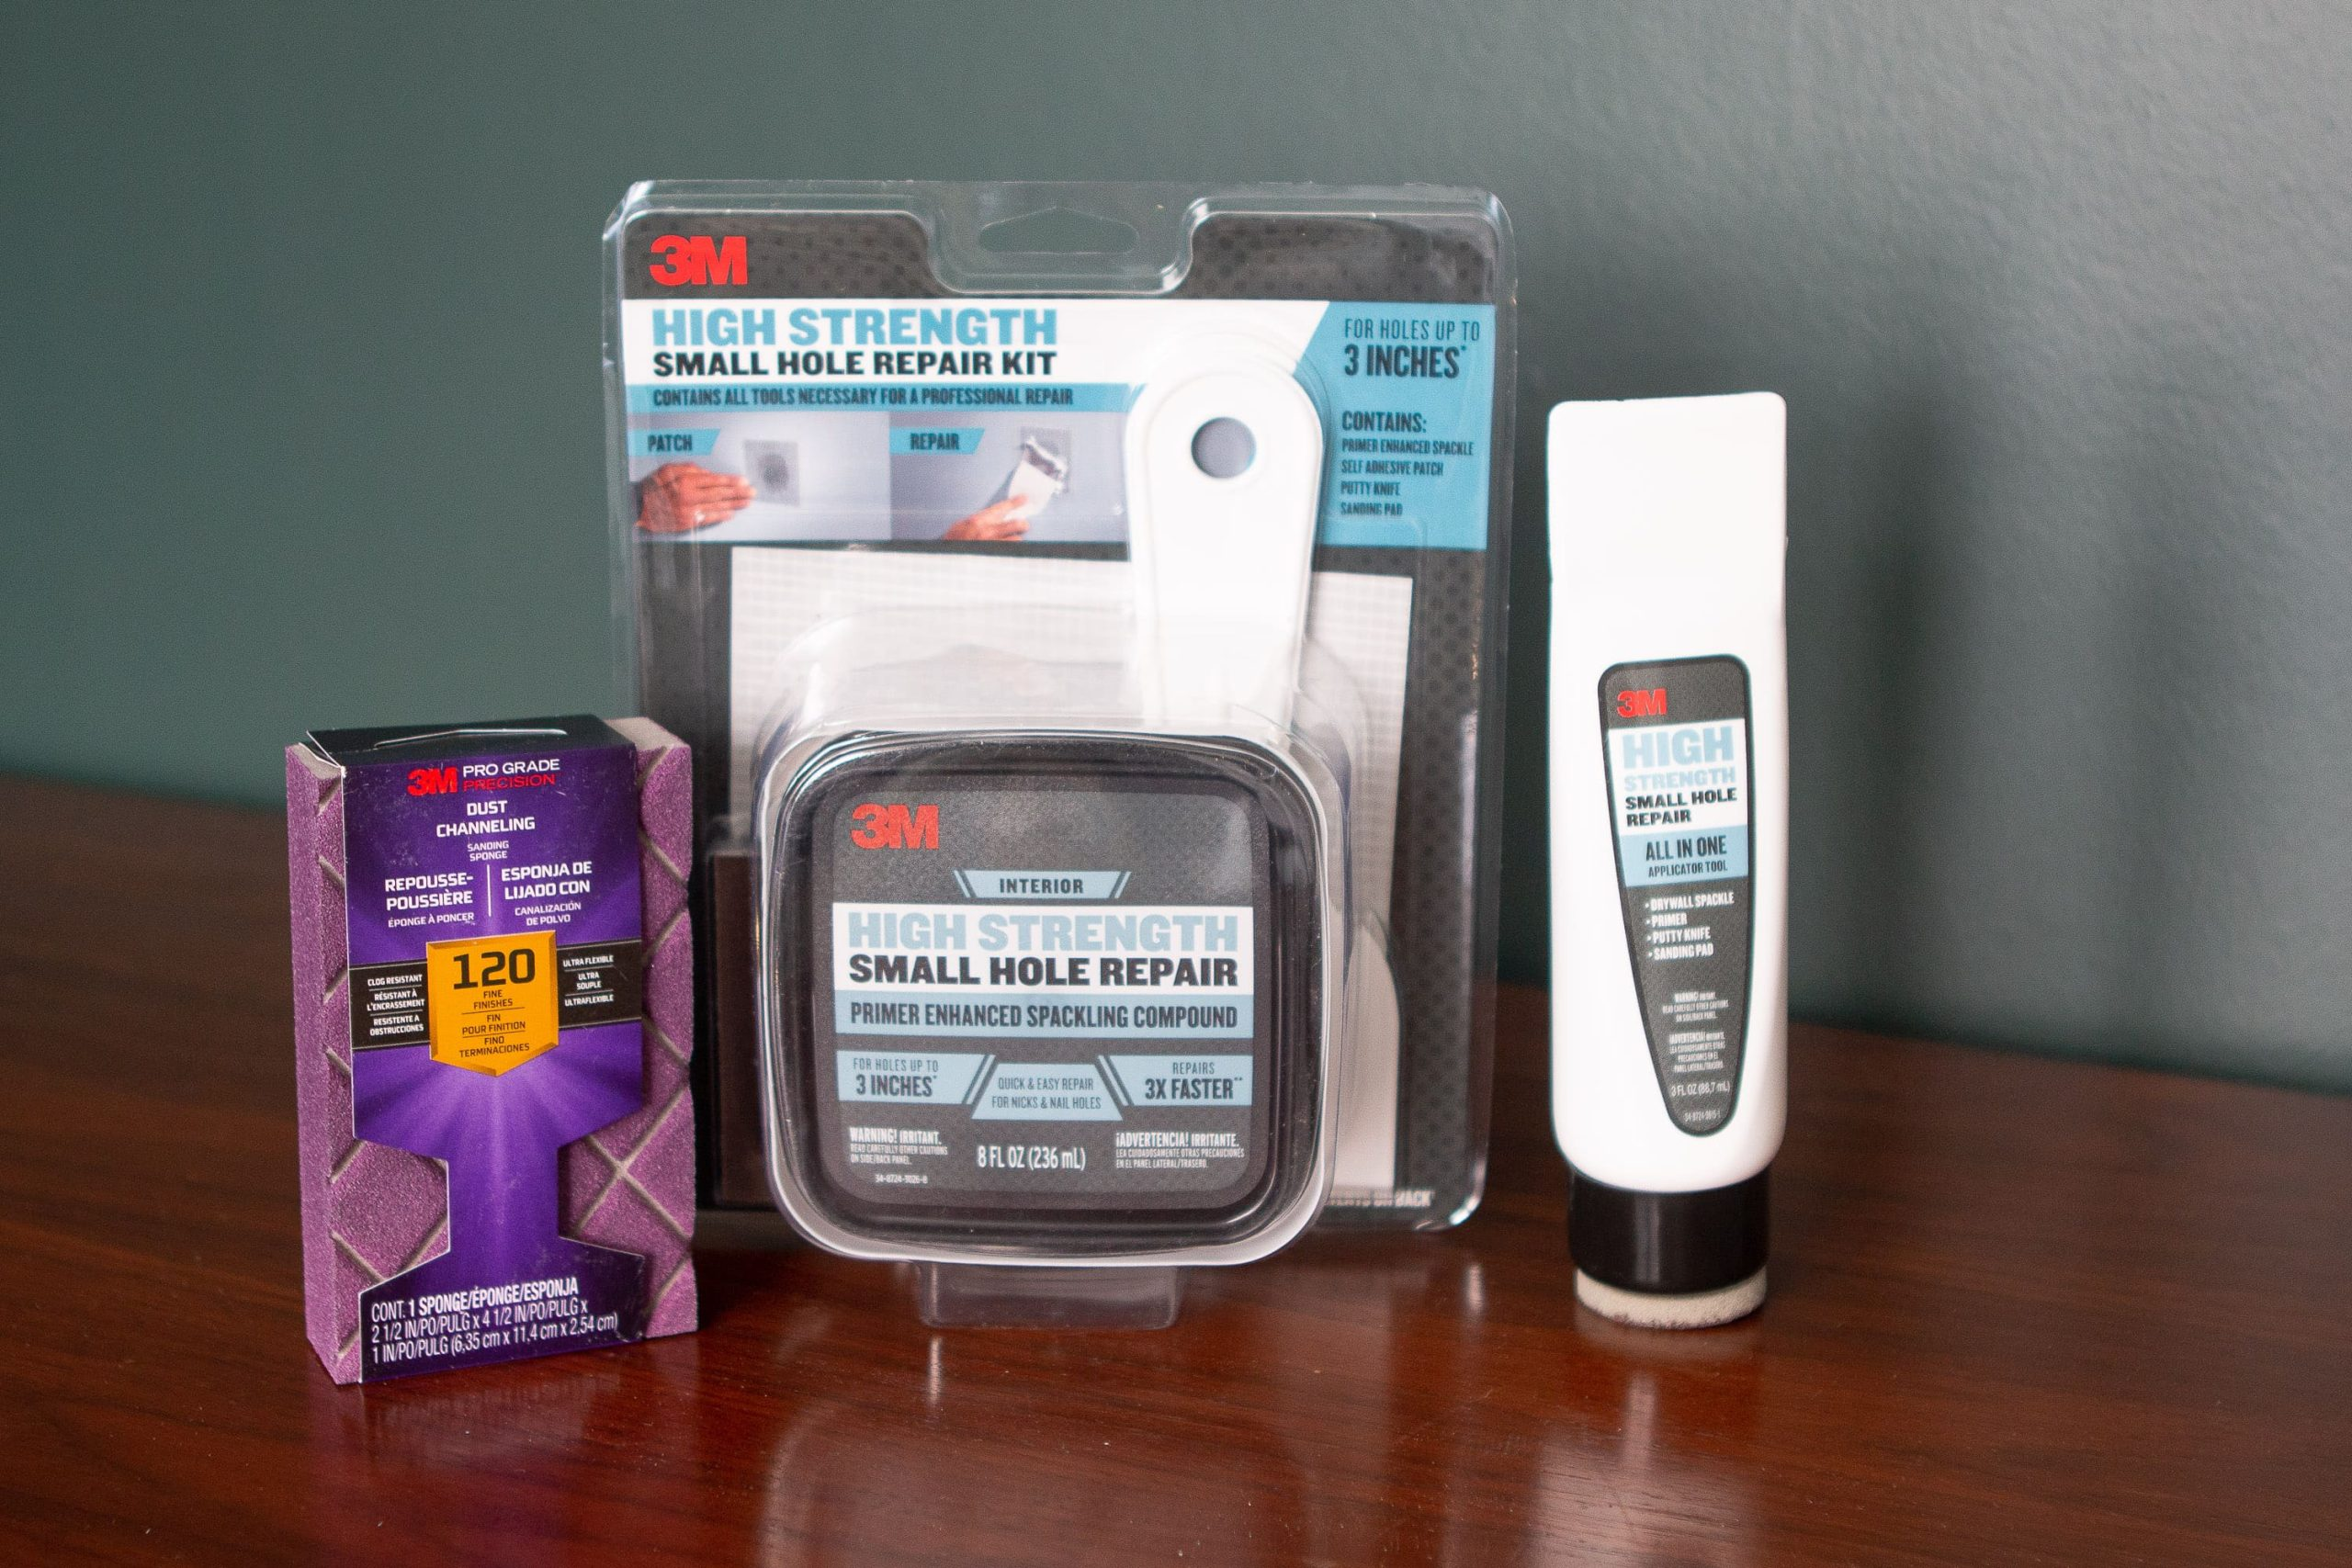 Supplies to fix small holes in drywall